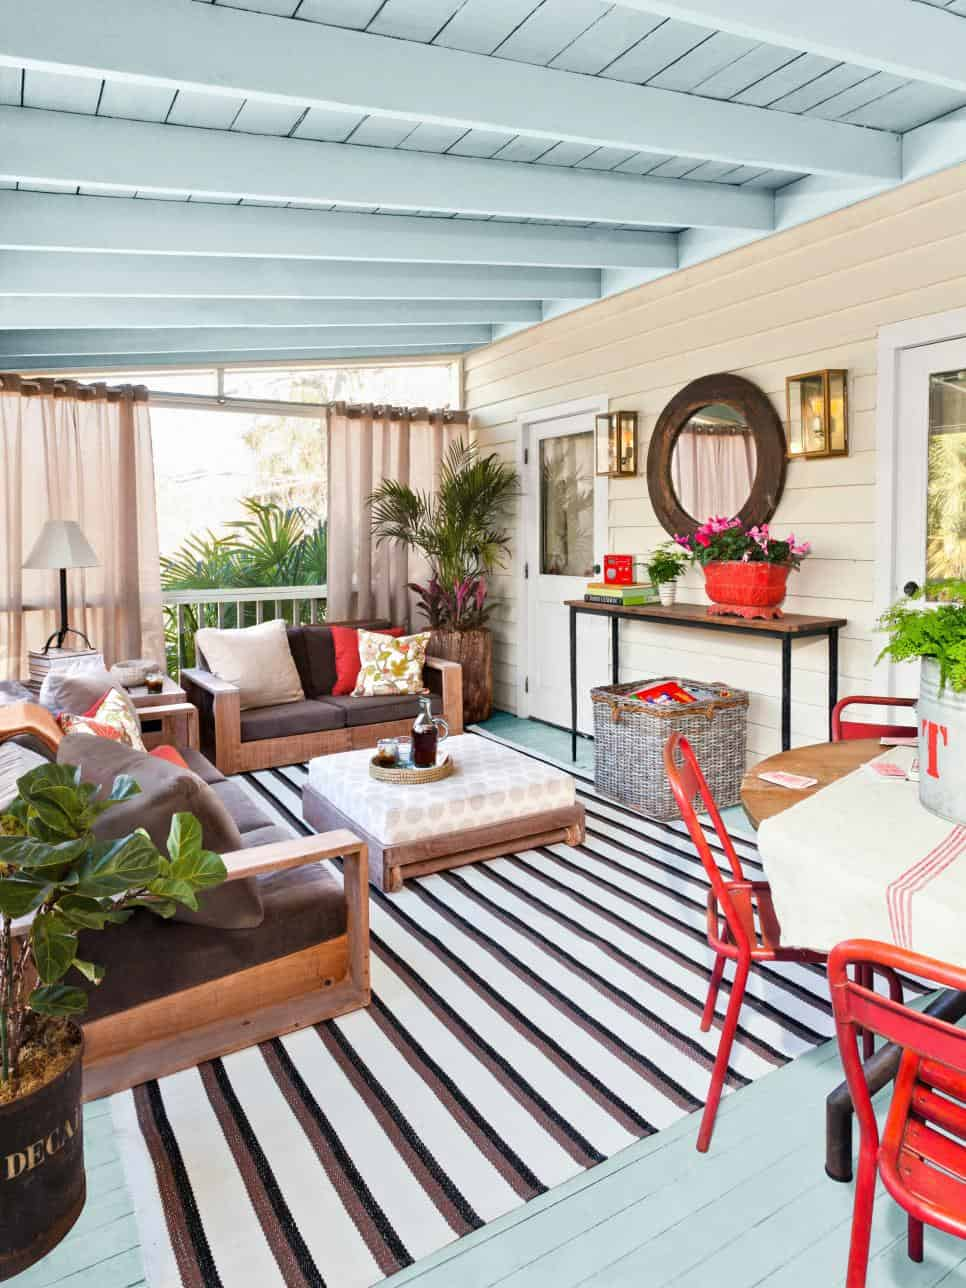 painted deck 10 Ways to Spruce Your Outdoor Space With Paint